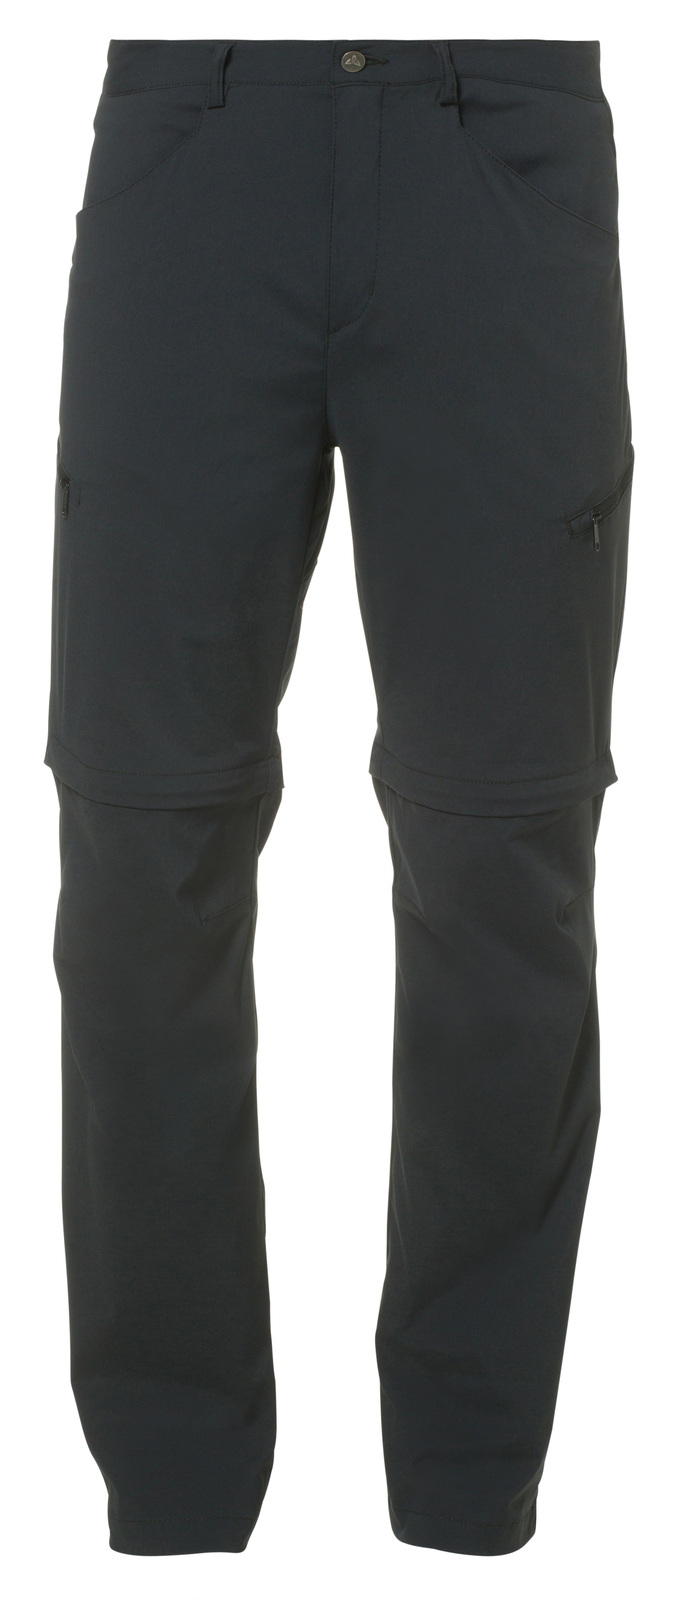 VAUDE Men´s Yaki ZO Pants black Größe S - schneider-sports